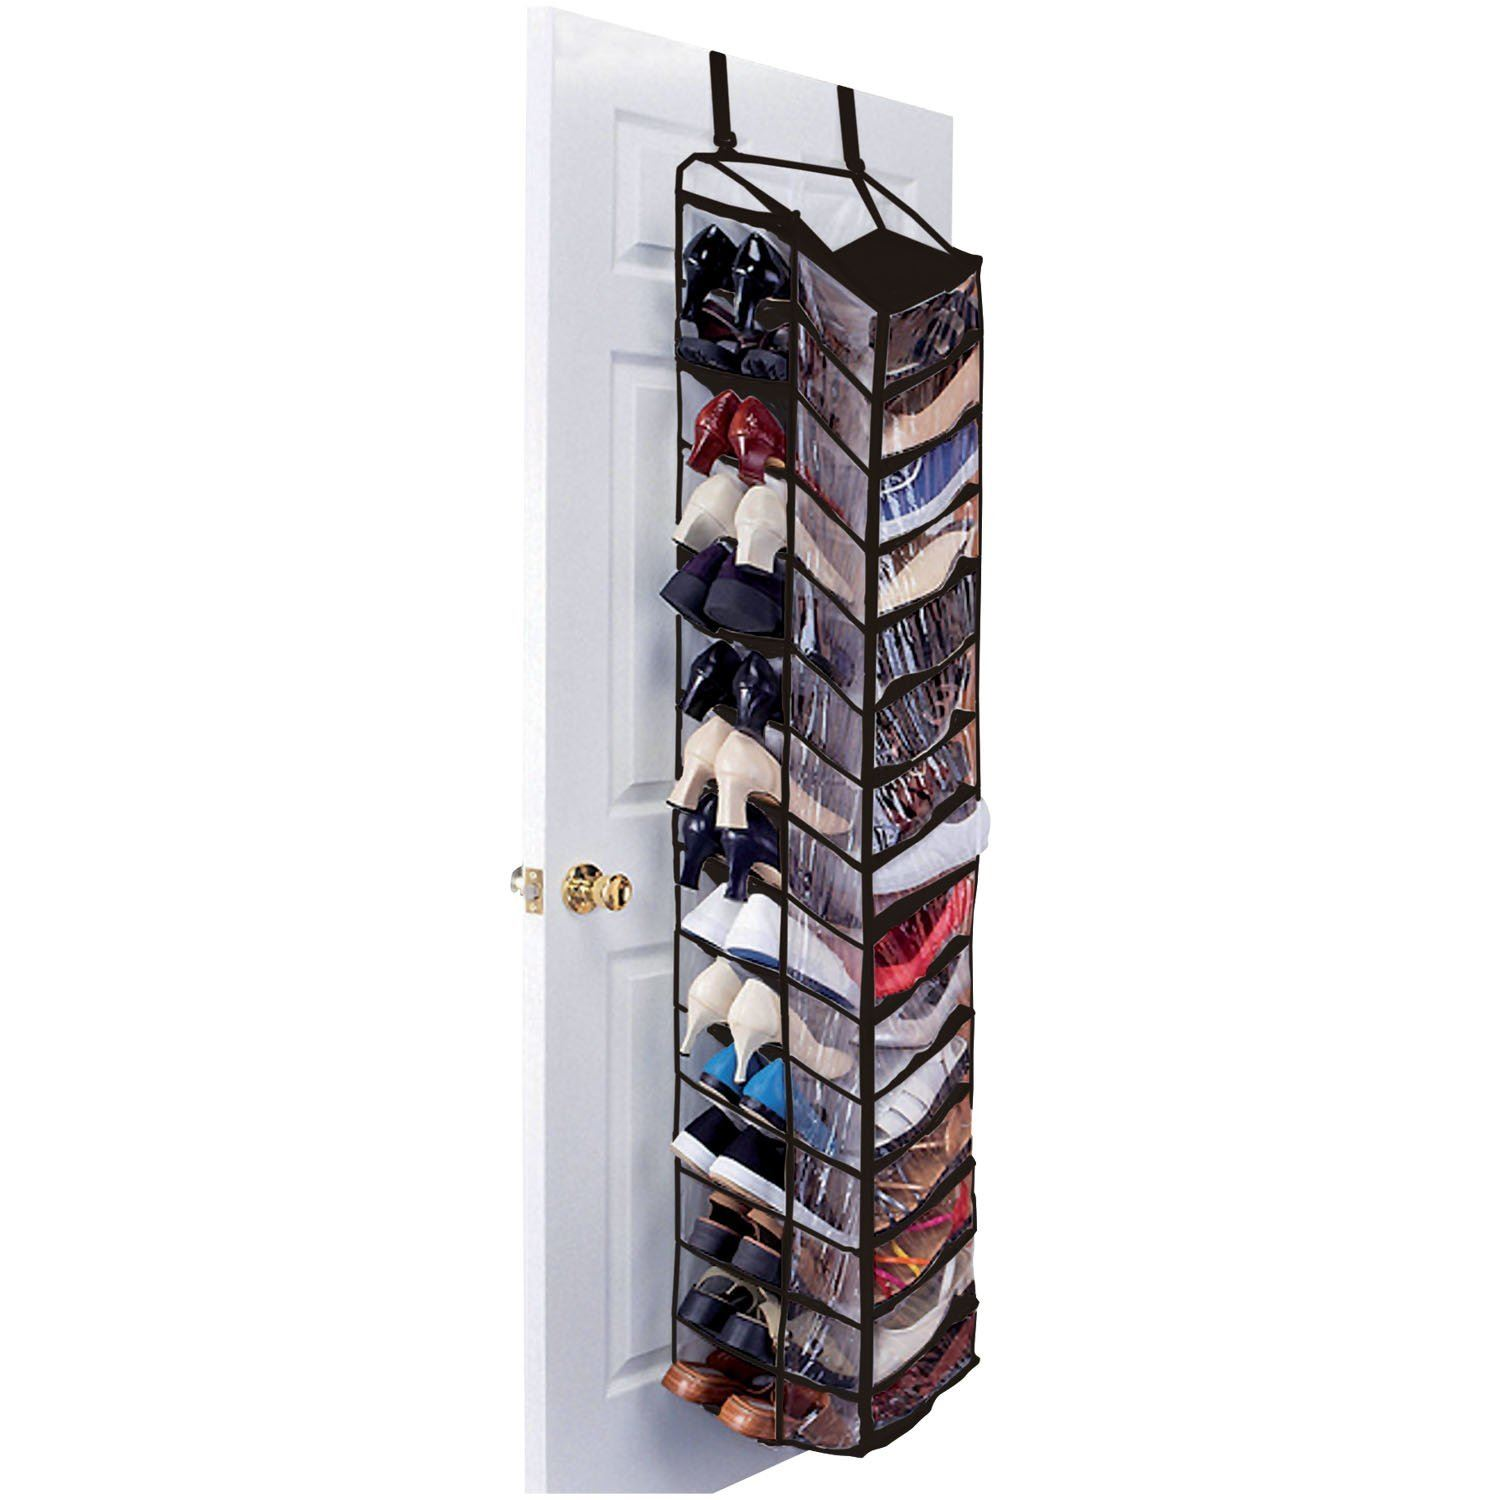 30 Pair Over The Door Hanging Shelf Shoe Rack Storage Stand Organiser Holder (black)